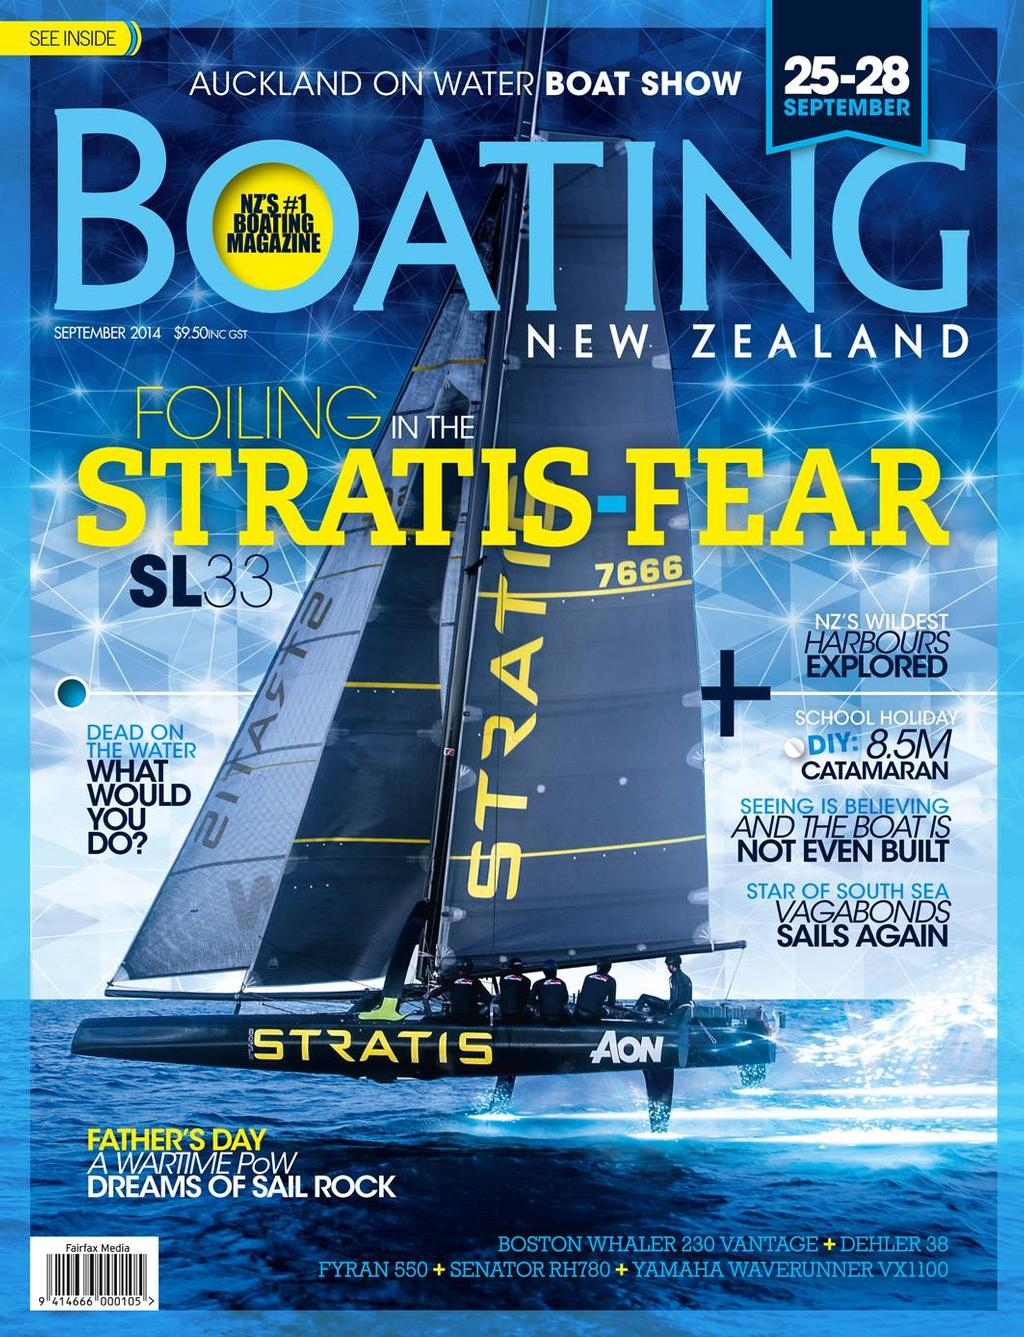 Statis SL33 makes the cover of Boating NZ - image by Bryce Taylor © SW